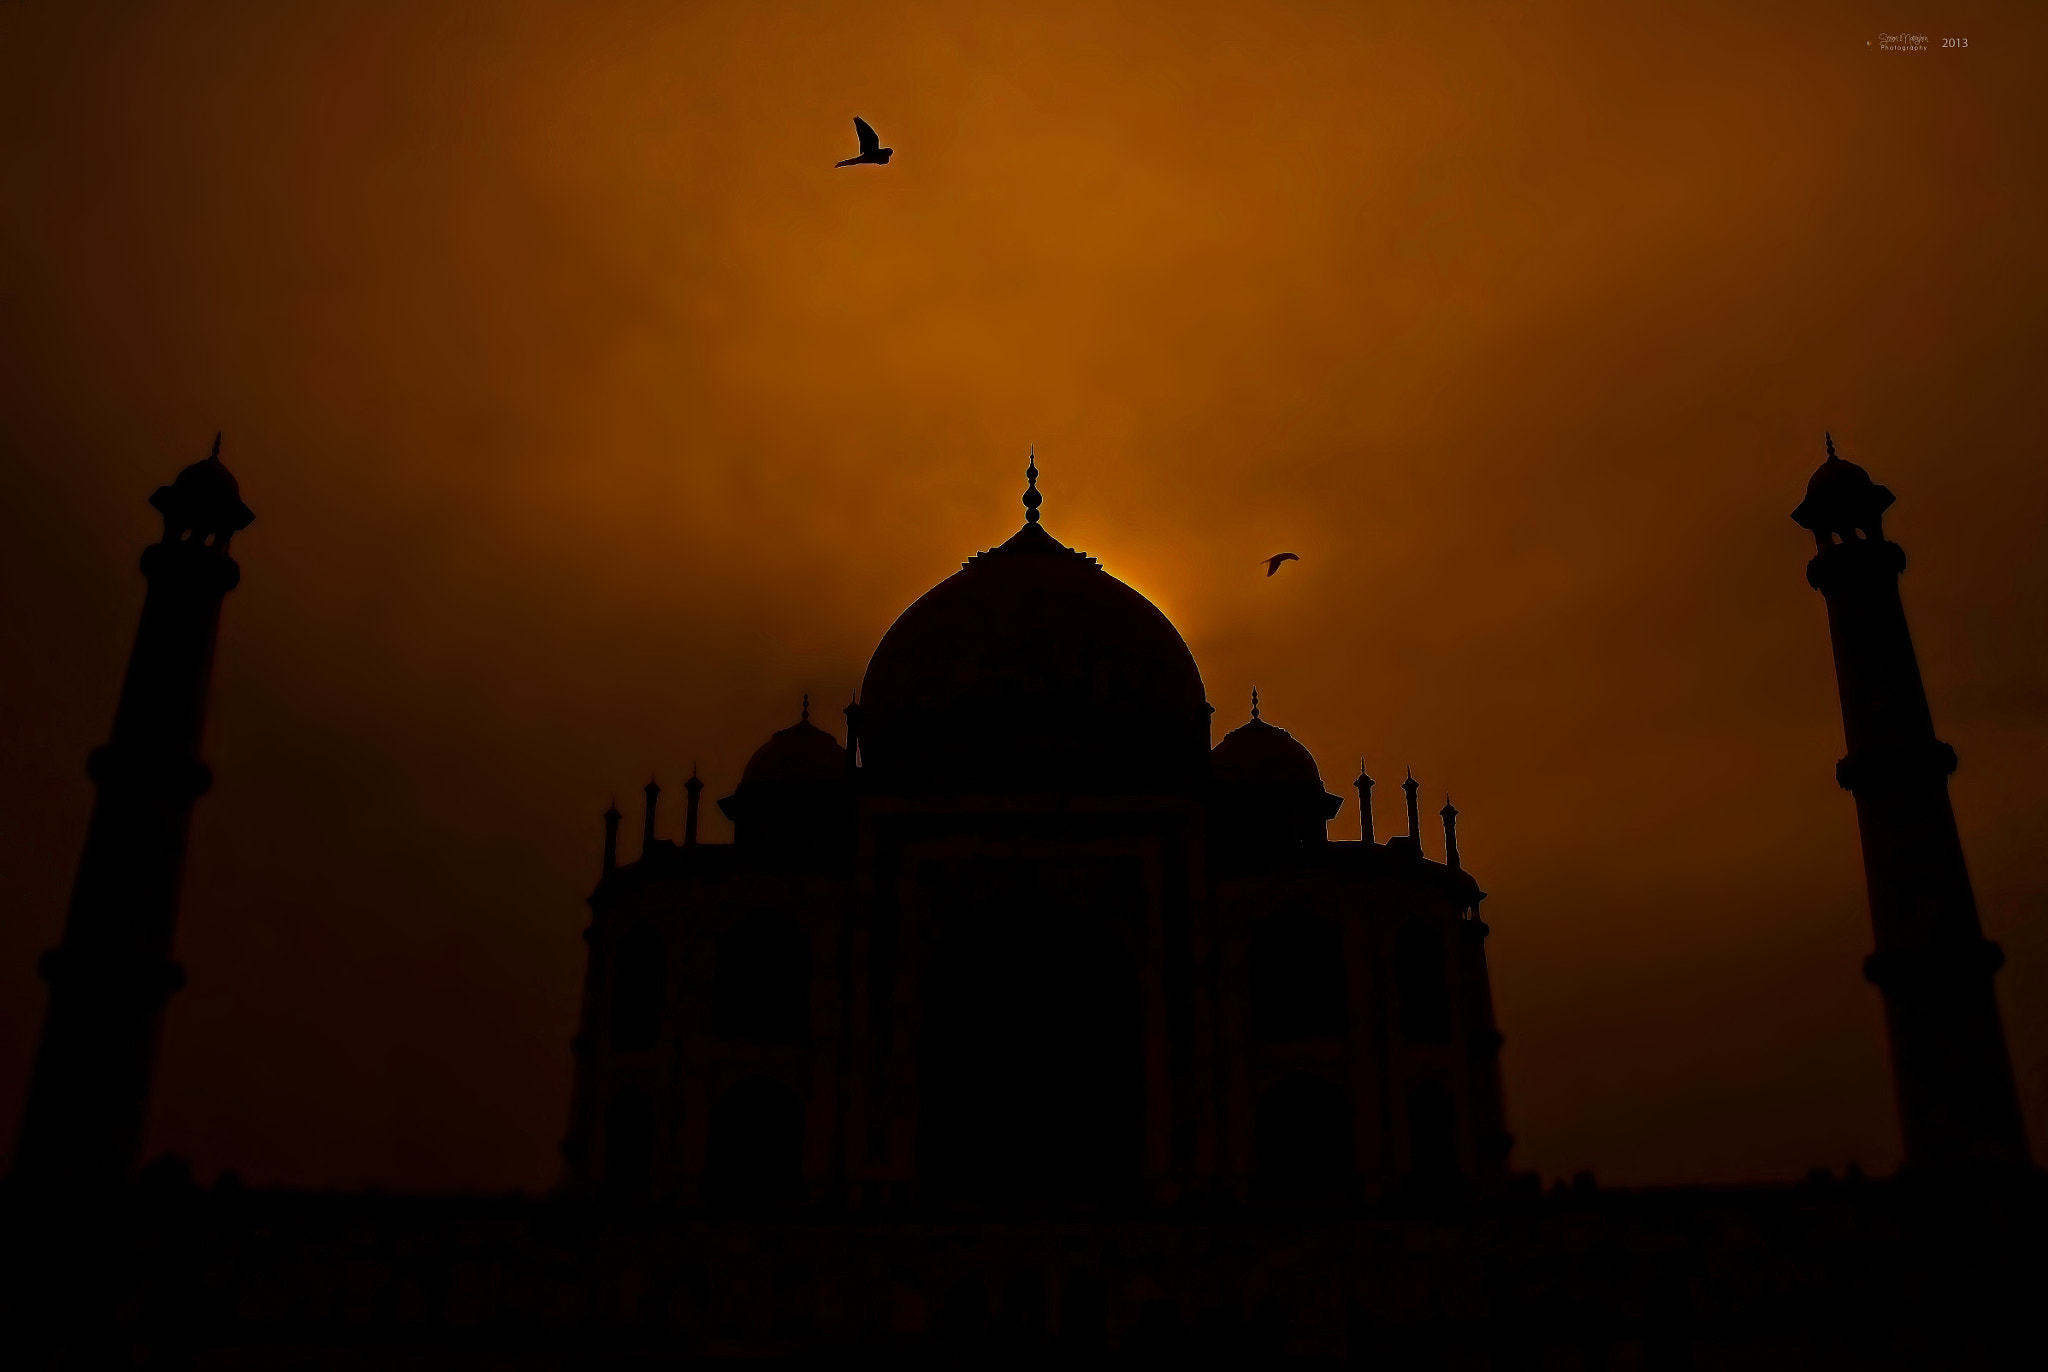 Photograph Sunset Taj Mahal by Sriram Natrajhen on 500px